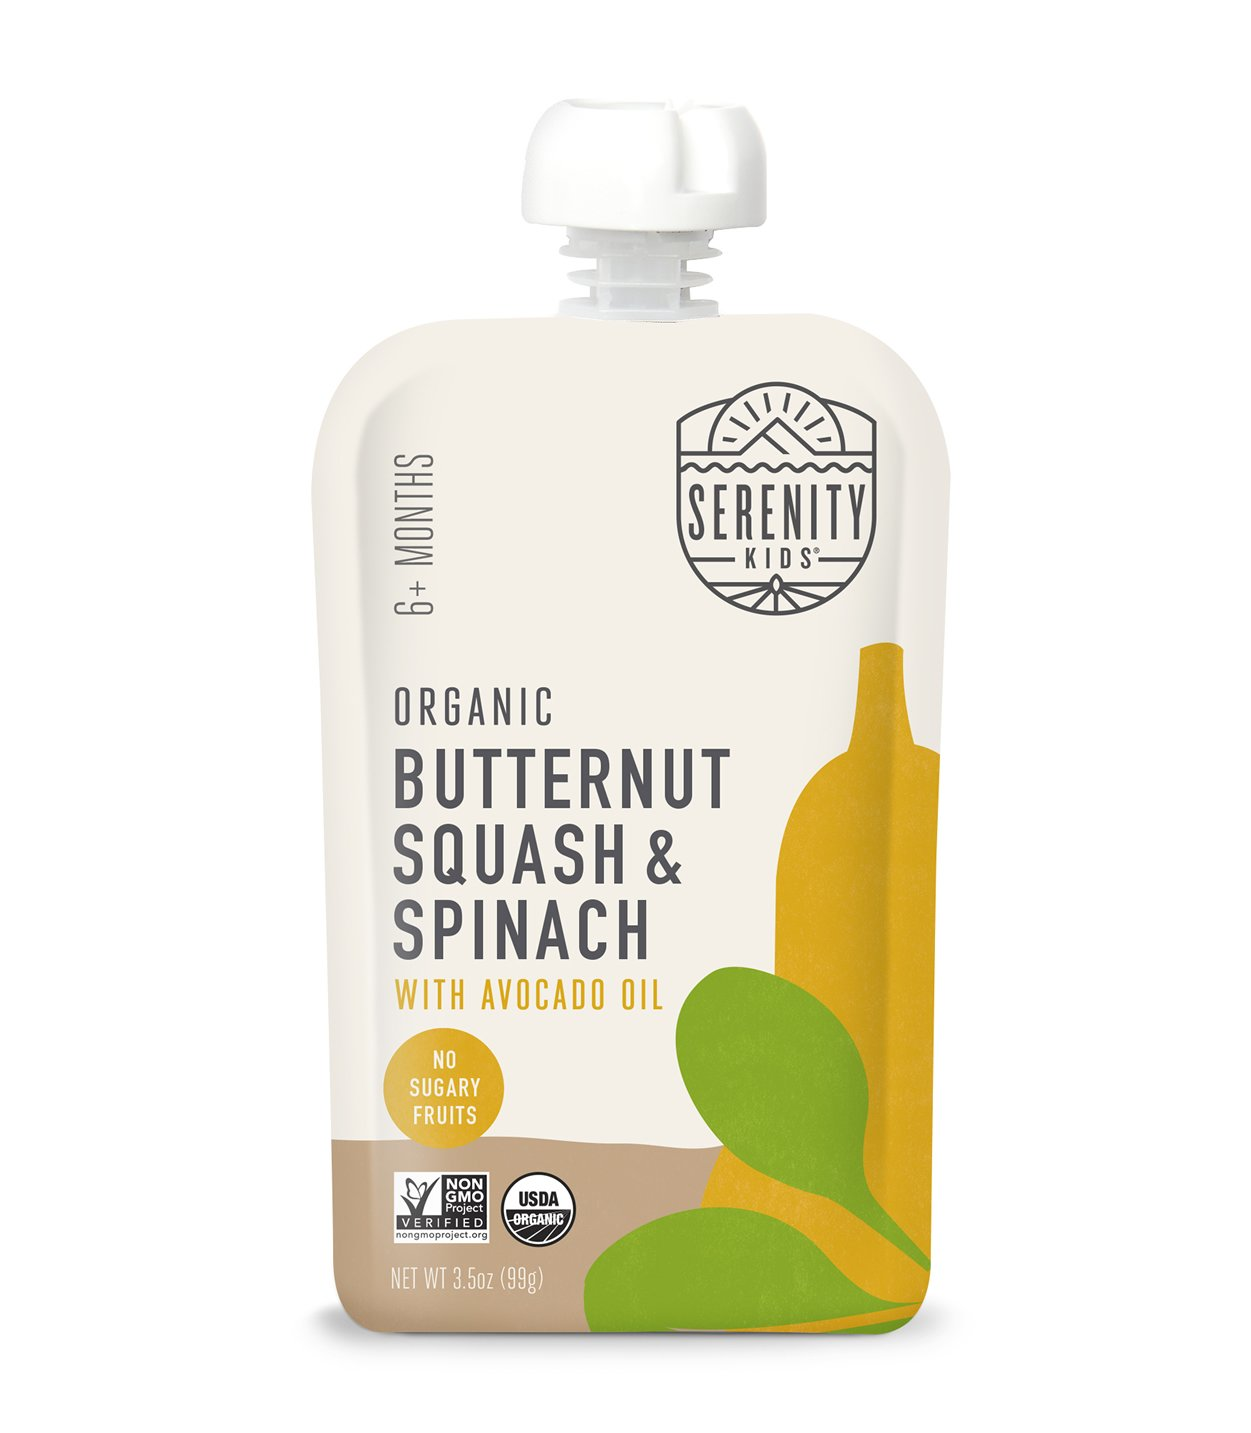 Baby Food - Organic Butternut Squash And Spinach